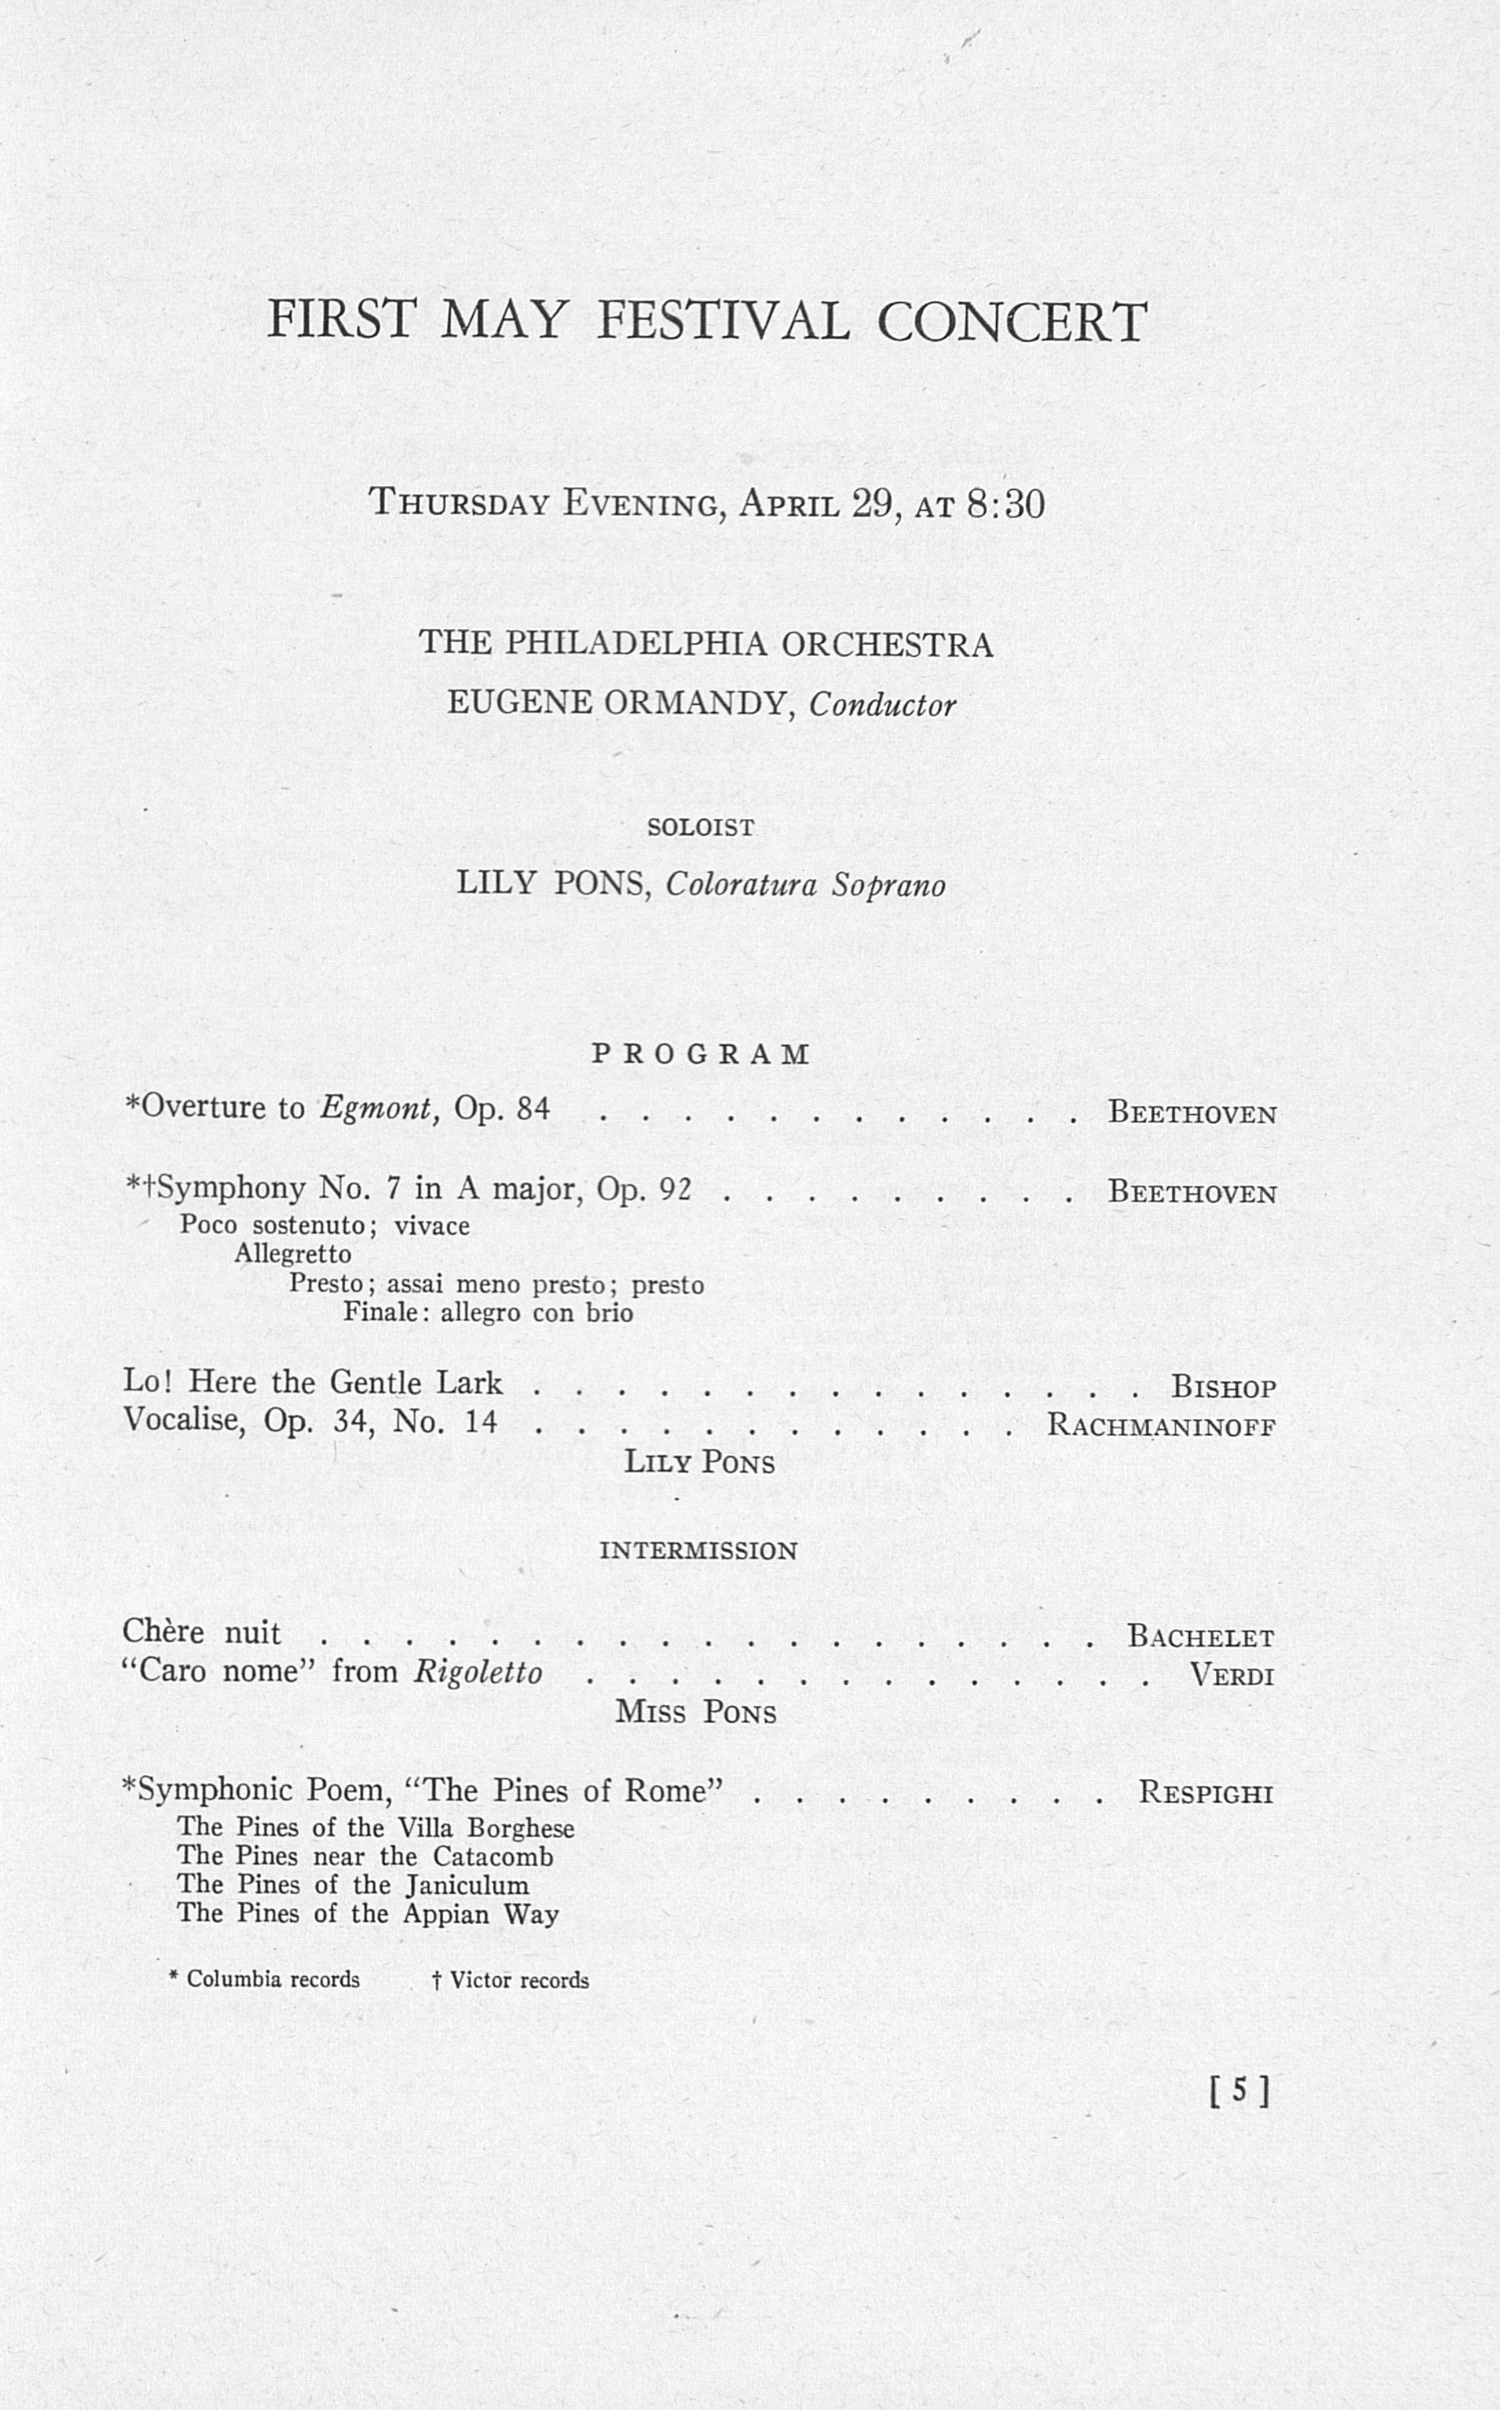 UMS Concert Program, April 29, 30, May 1, 2, 1954: The Sixty-first Annual May Festival -- The Philadelphia Orchestra image